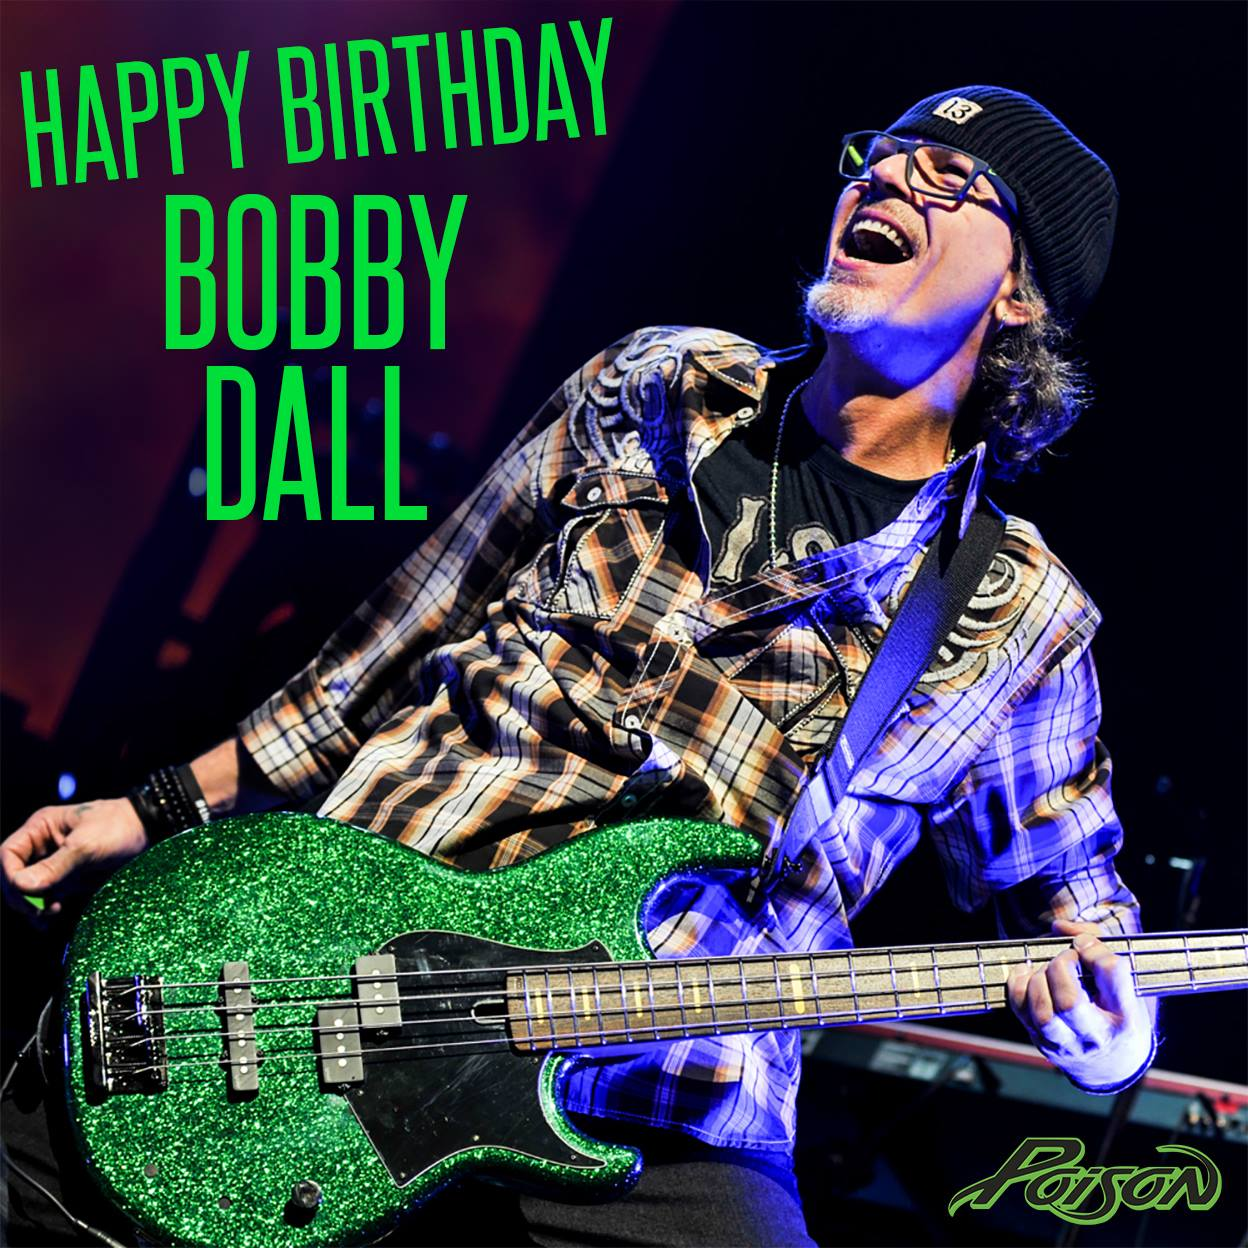 Happy Birthday Bobby Dall